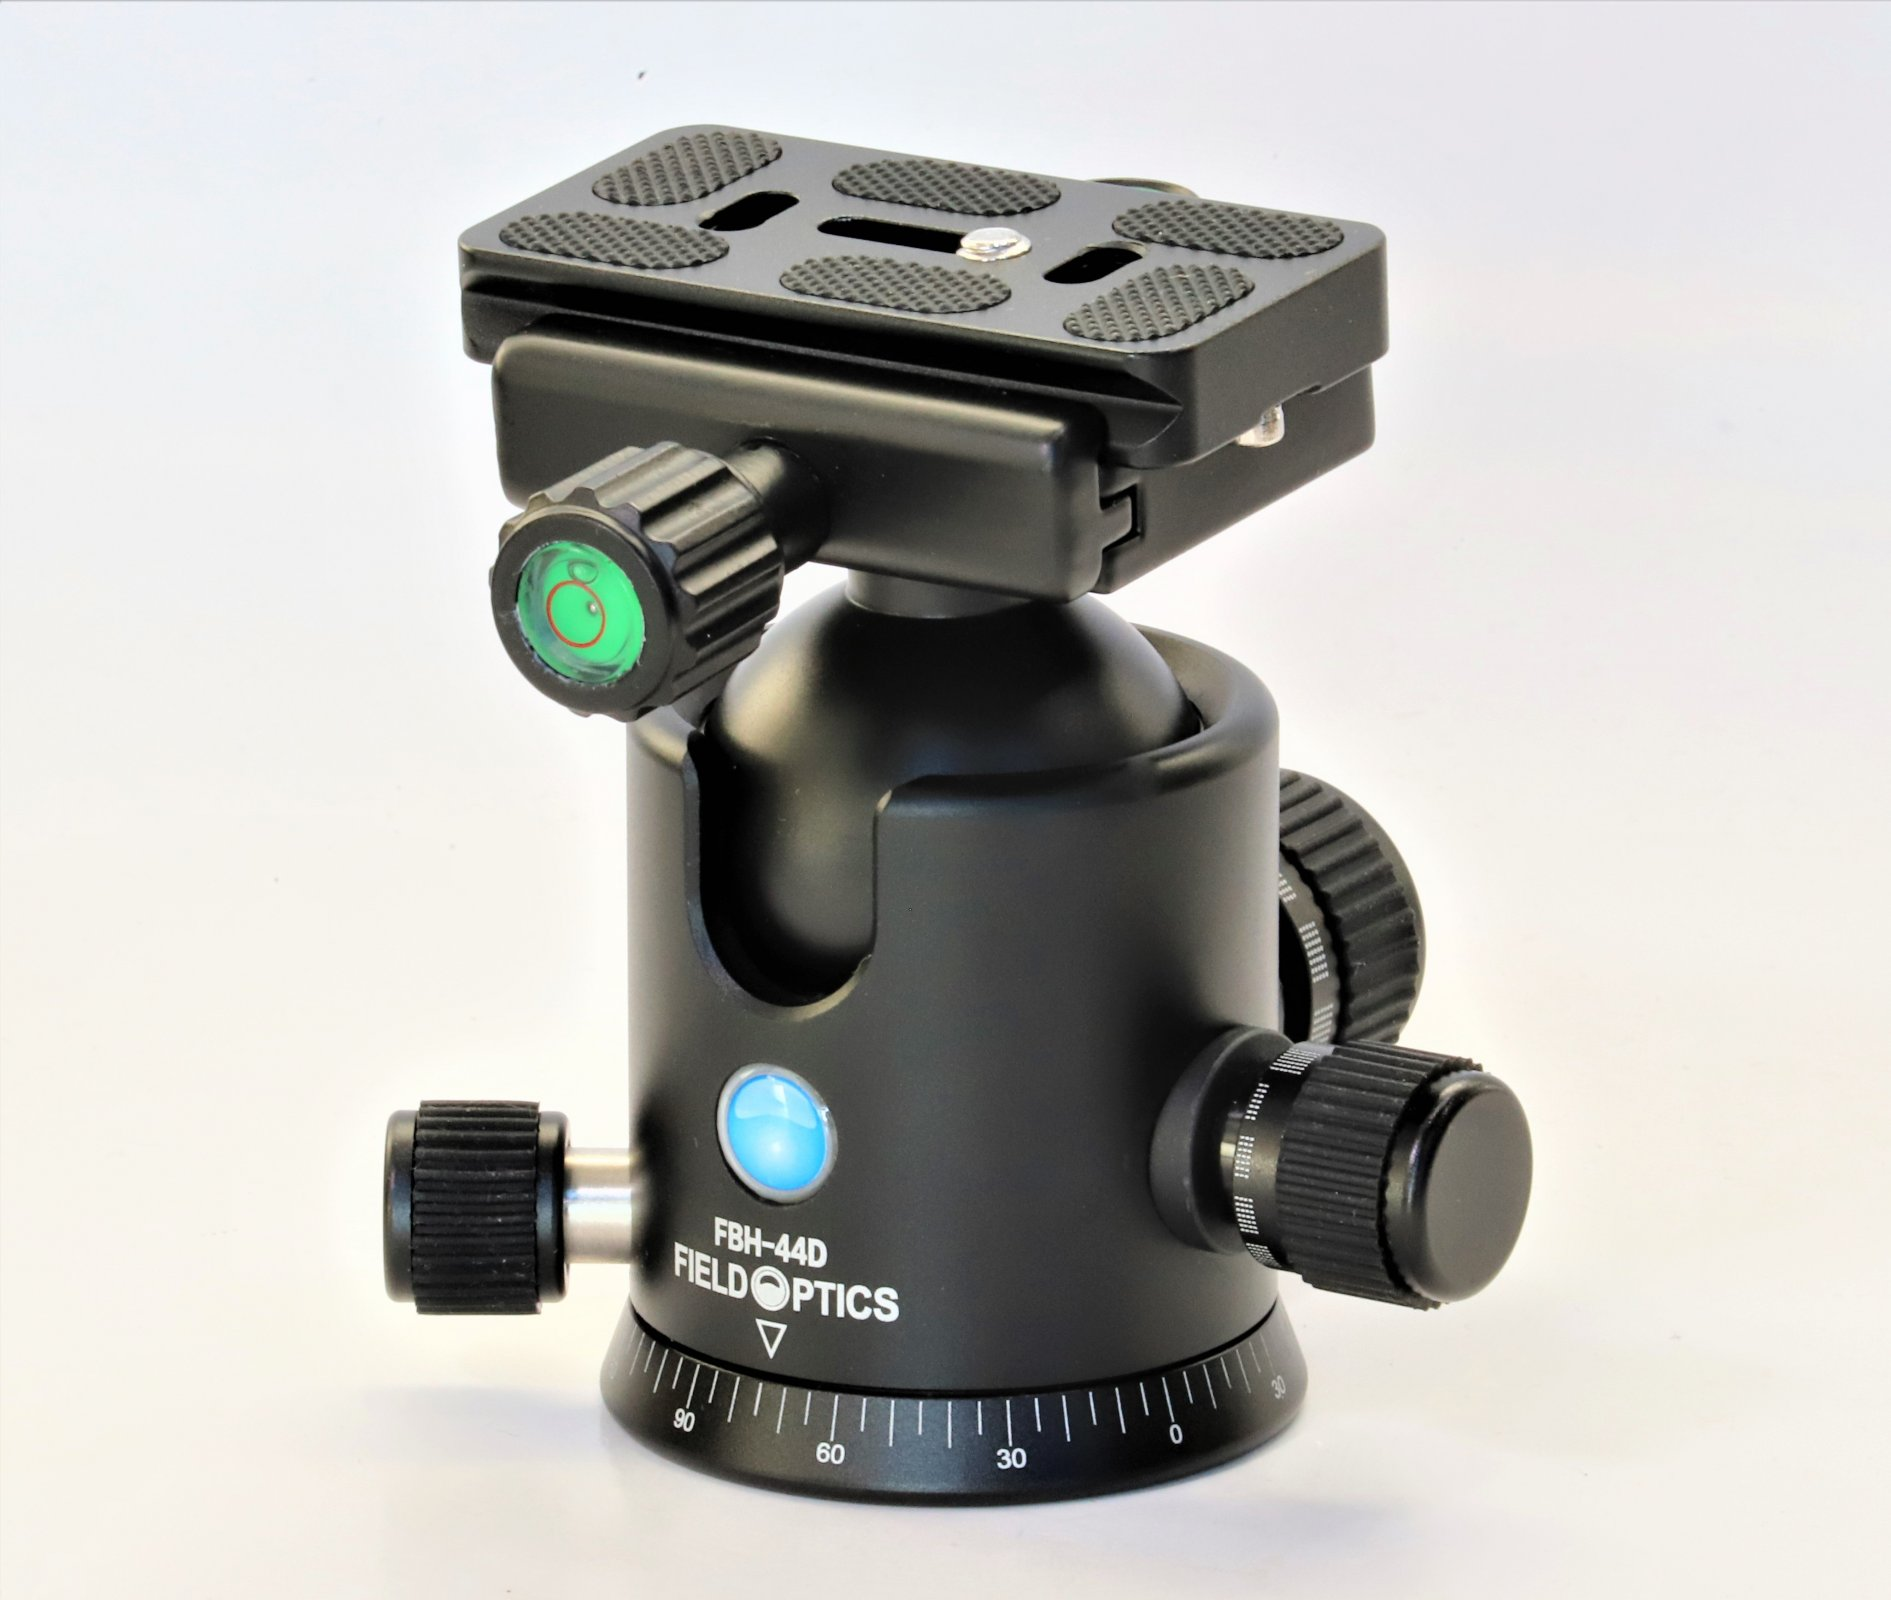 FBH-44D Heavy Duty Ball Head